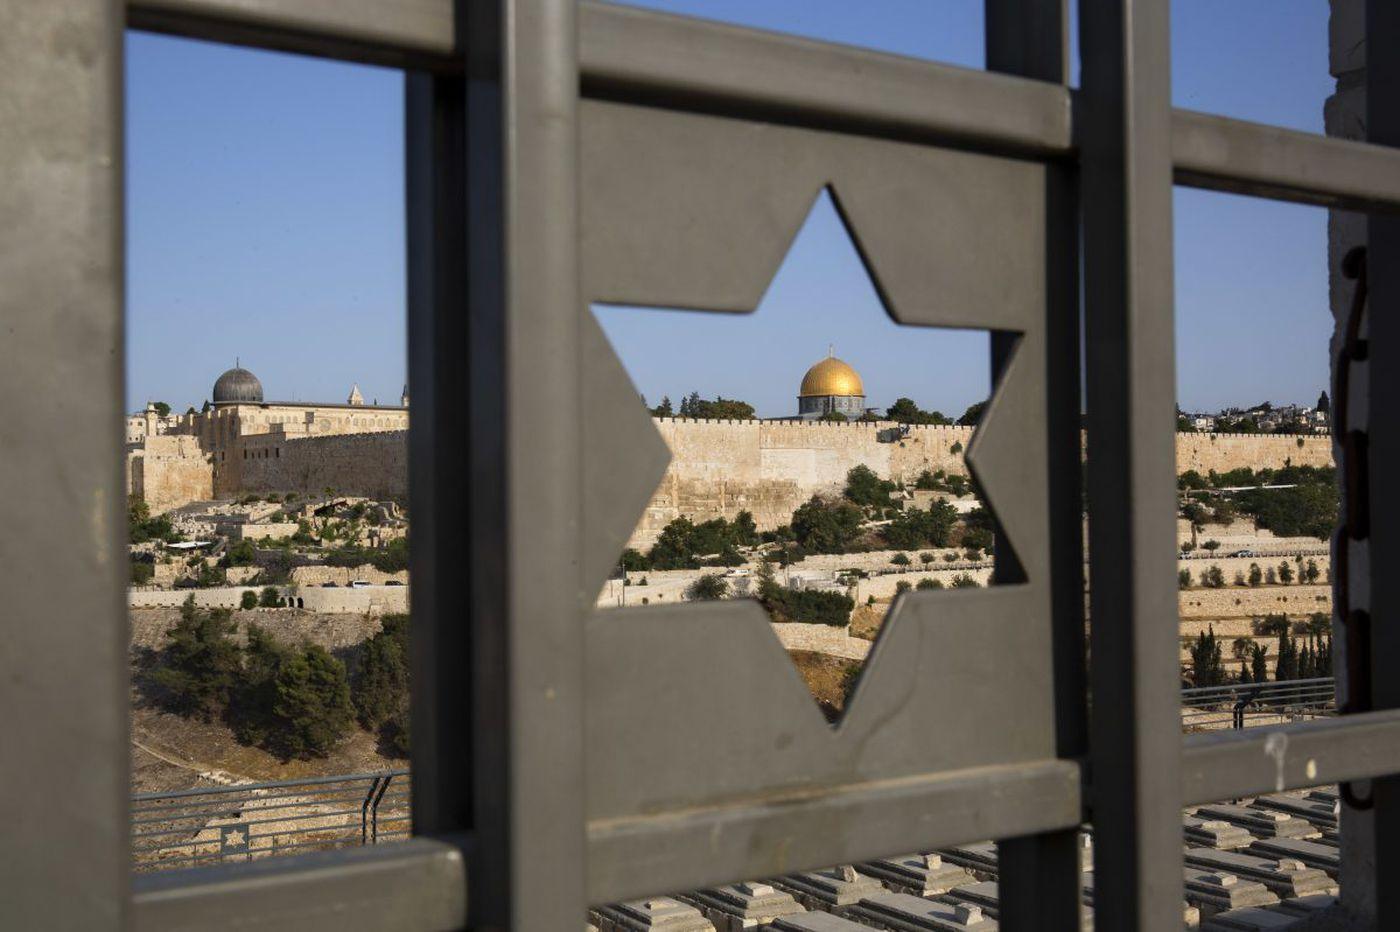 On tour of Israel and territories, one story offers a message of hope